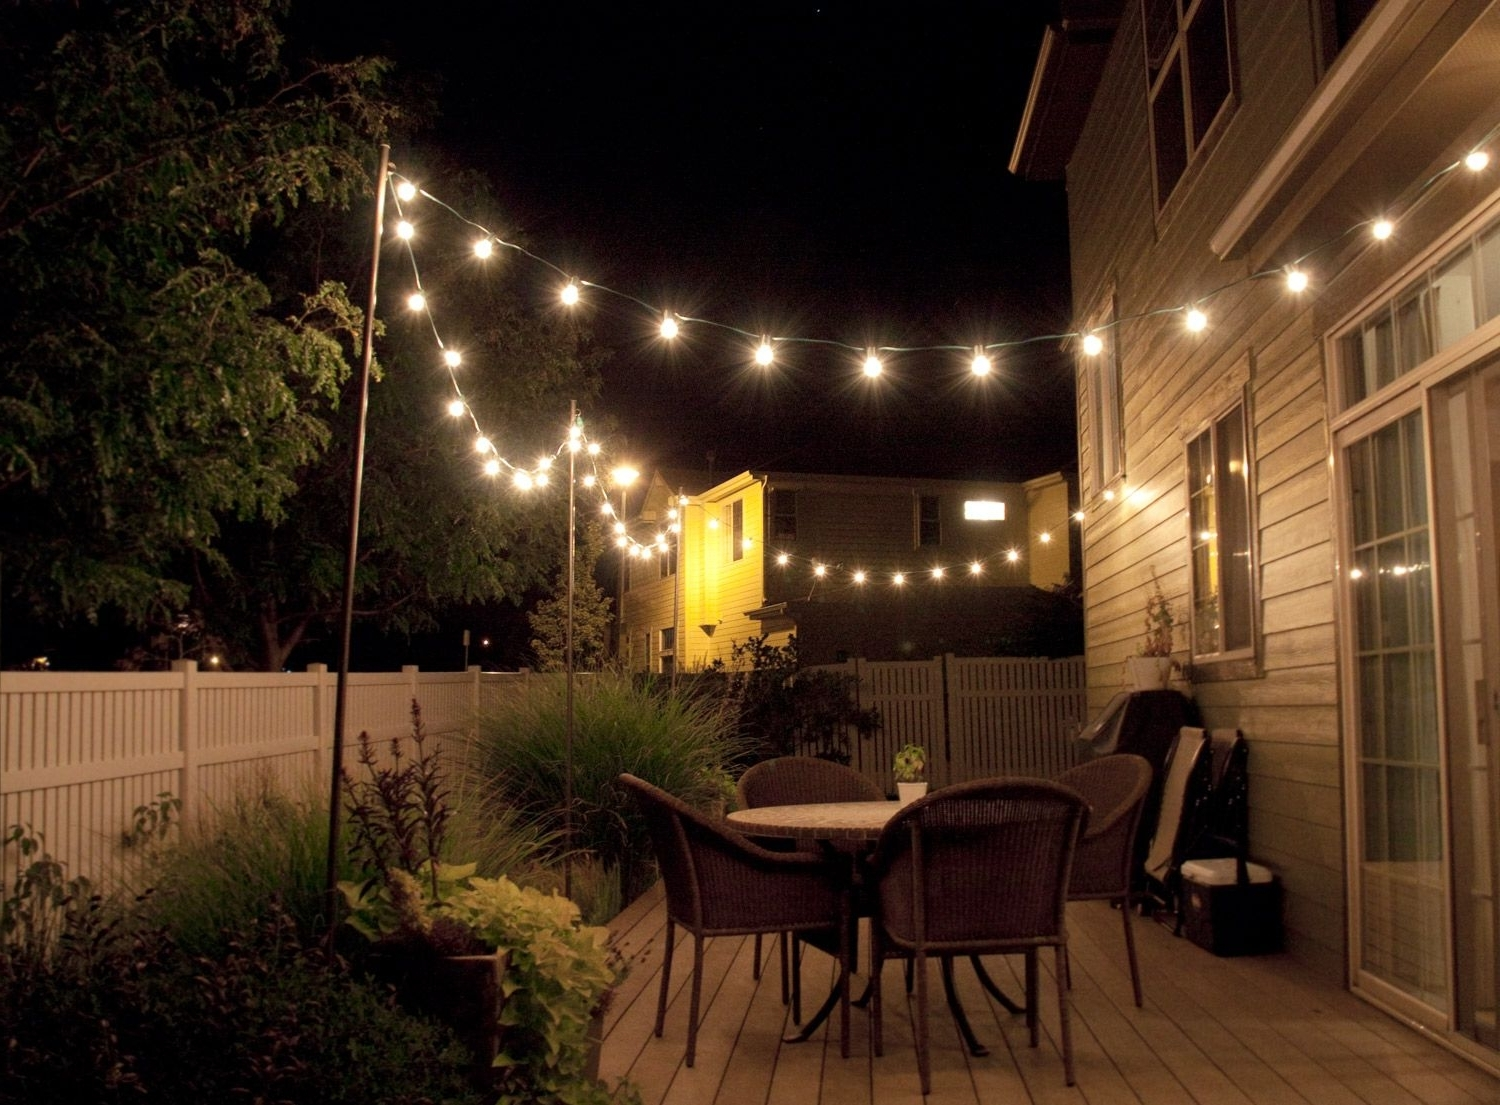 How To Make Inexpensive Poles To Hang String Lights On – Café Style Intended For Latest Outdoor Hanging Fairy Lights (View 1 of 20)